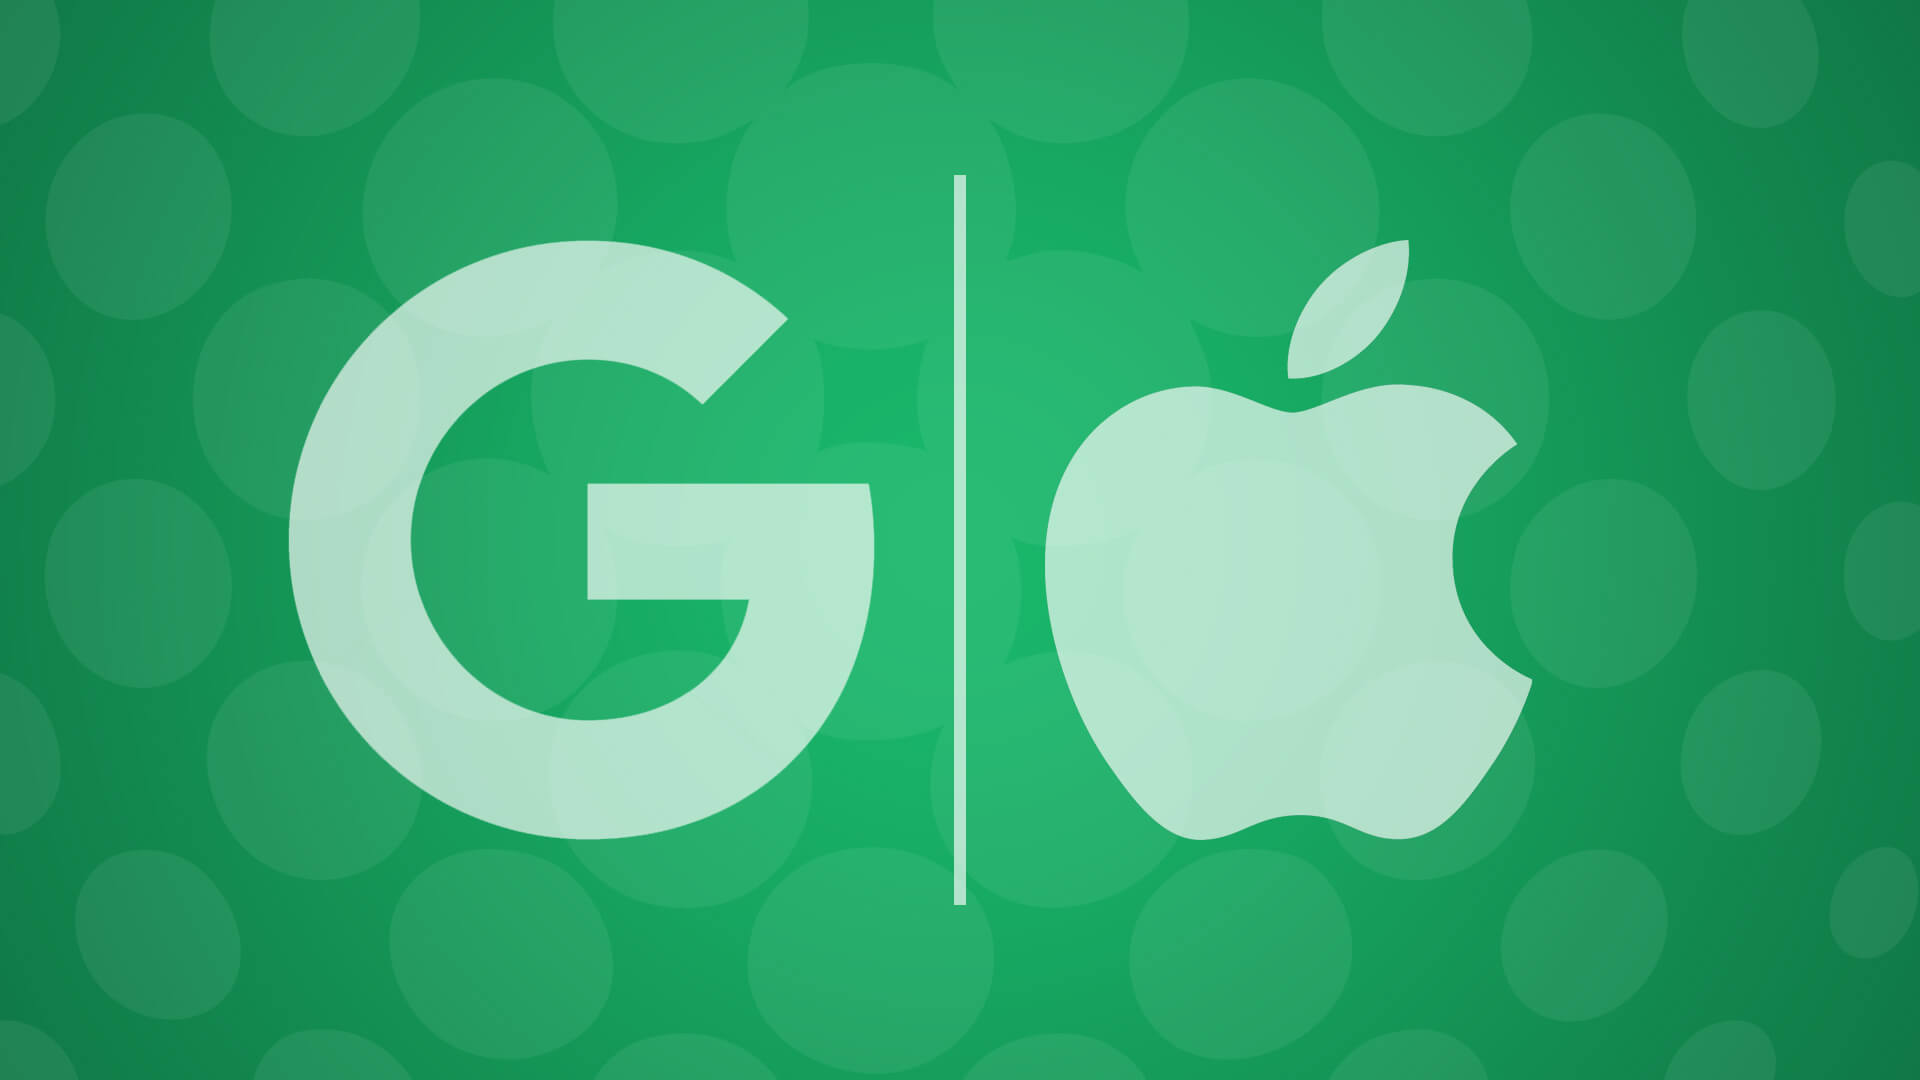 google-apple-green3-1920.jpg